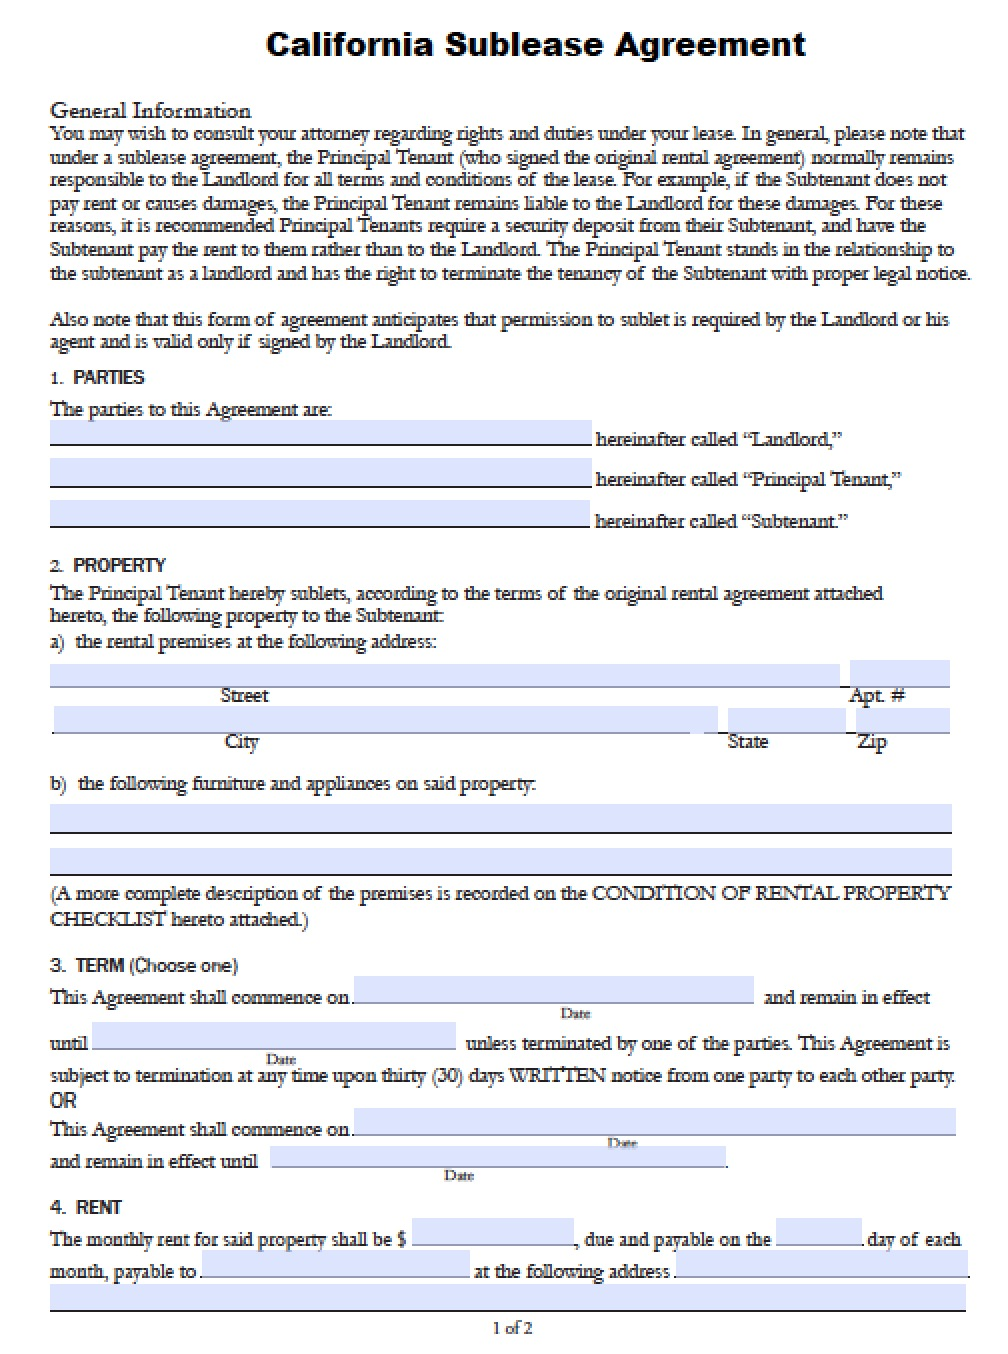 Perfect California Sublease Agreement Version #2 | Adobe PDF | Microsoft Word